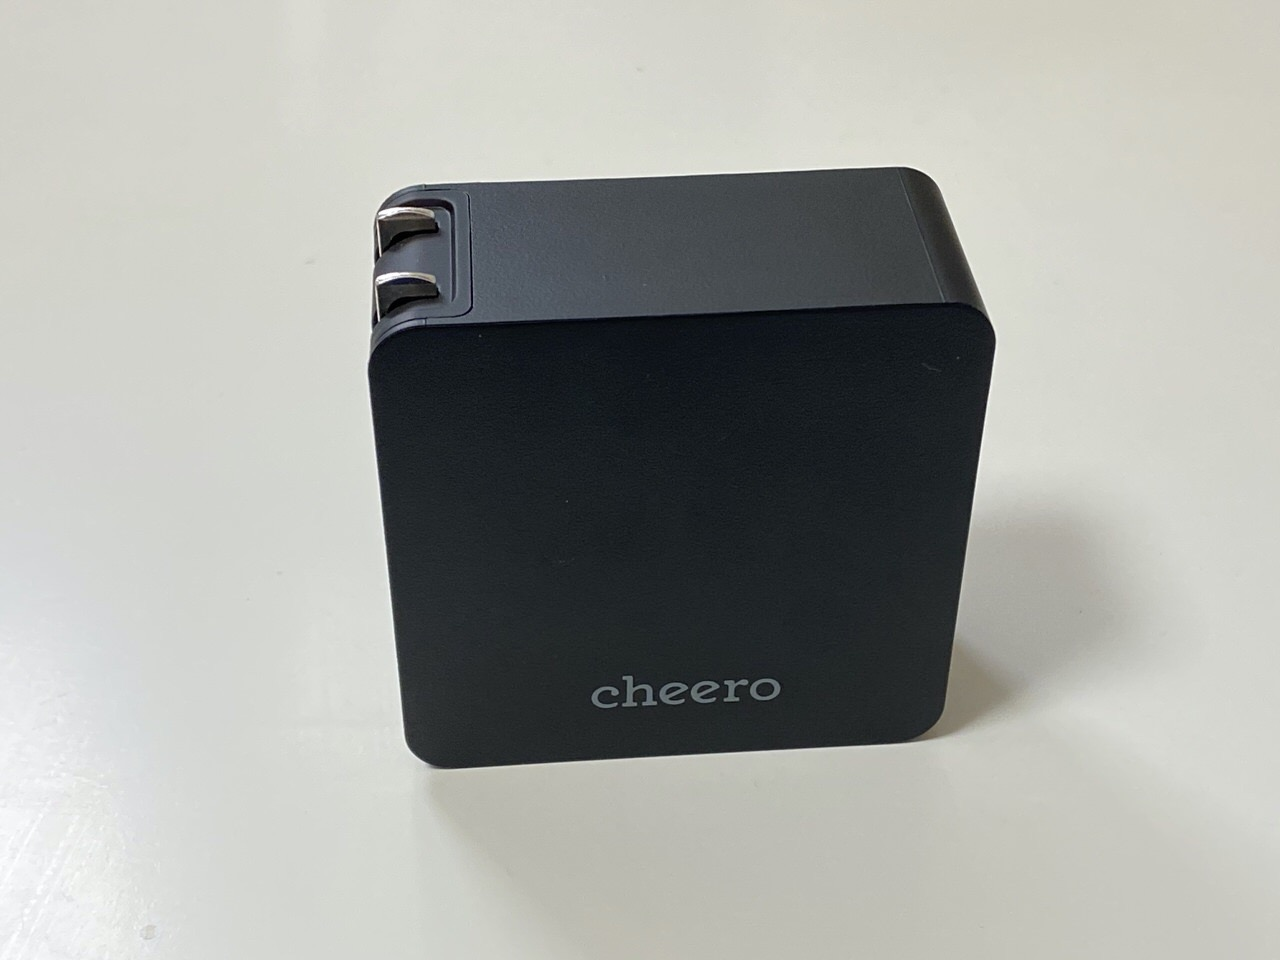 【cheero】「2 Port PD Charger 57W」3